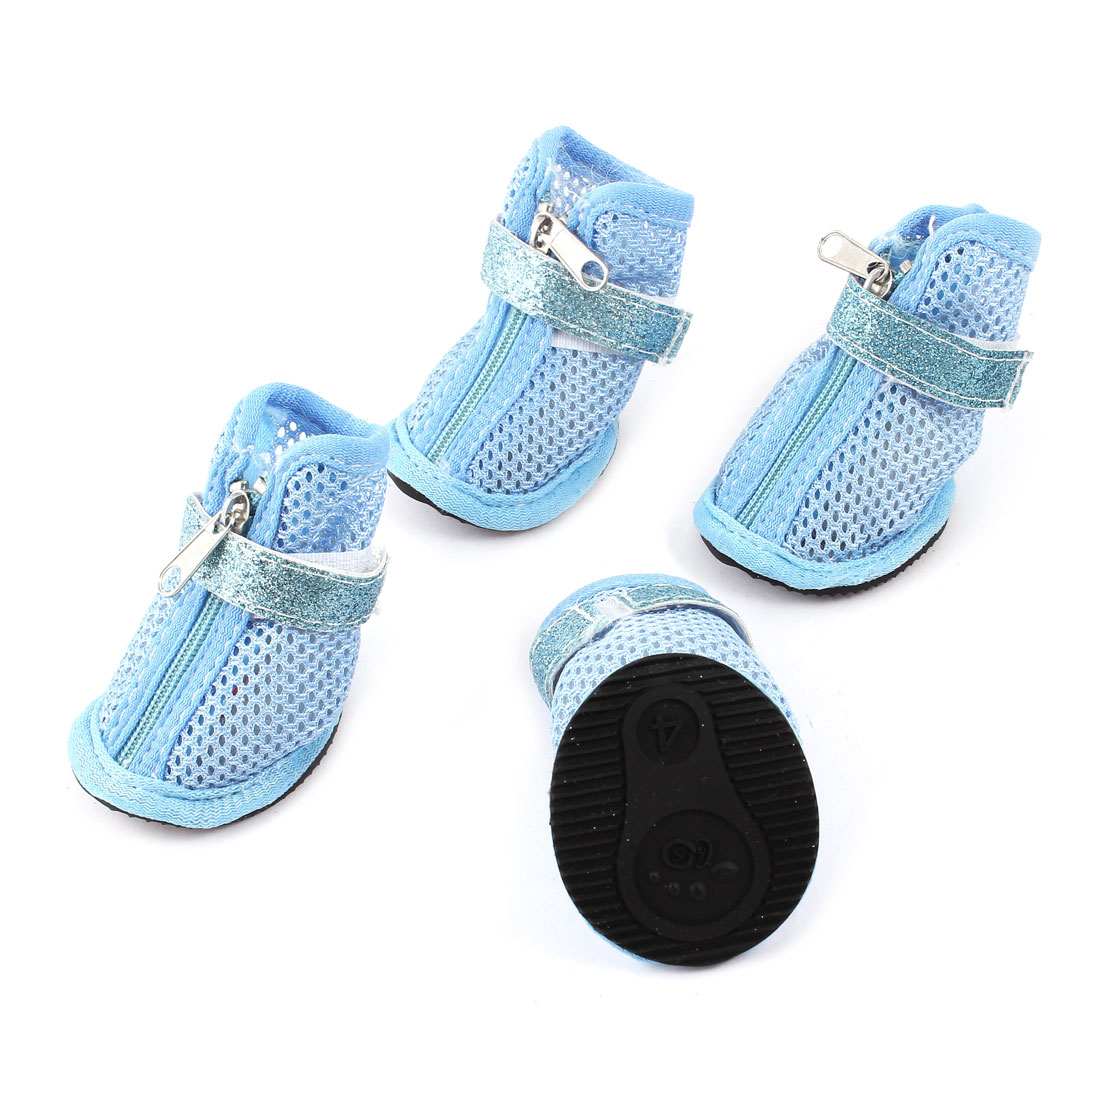 2 Pair Hook Loop Closure Pet Yorkie Doggy Netty Shoes Boots Booties Blue Size XS